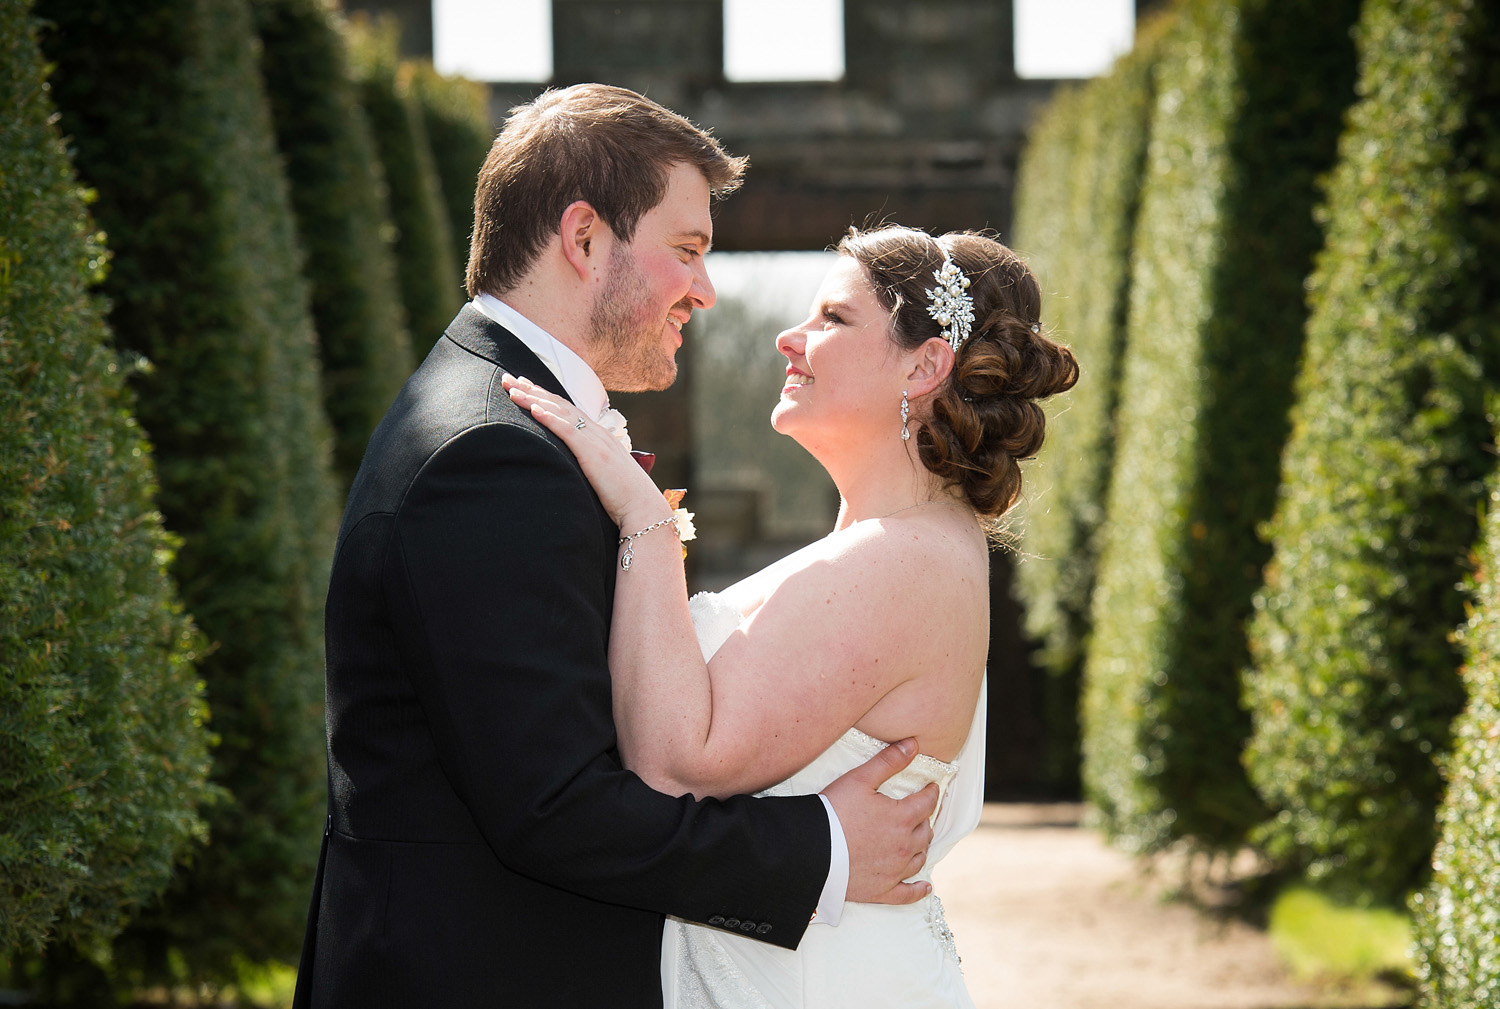 Wedding photographs at Hoghton Tower near Preston in Lancashire